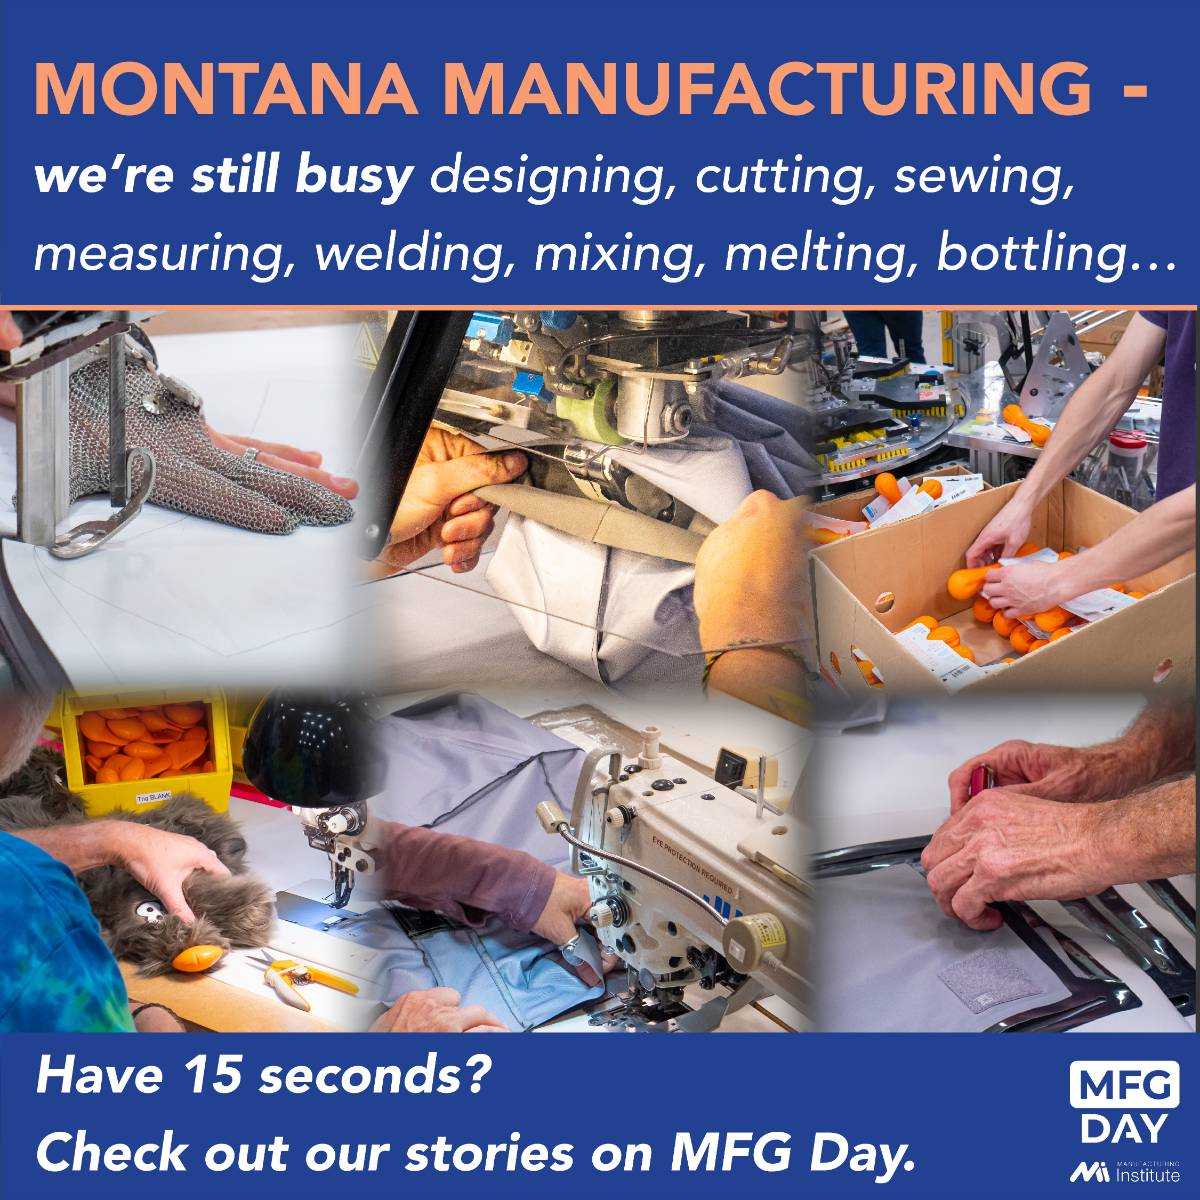 Montana Manufacturing We're still busy